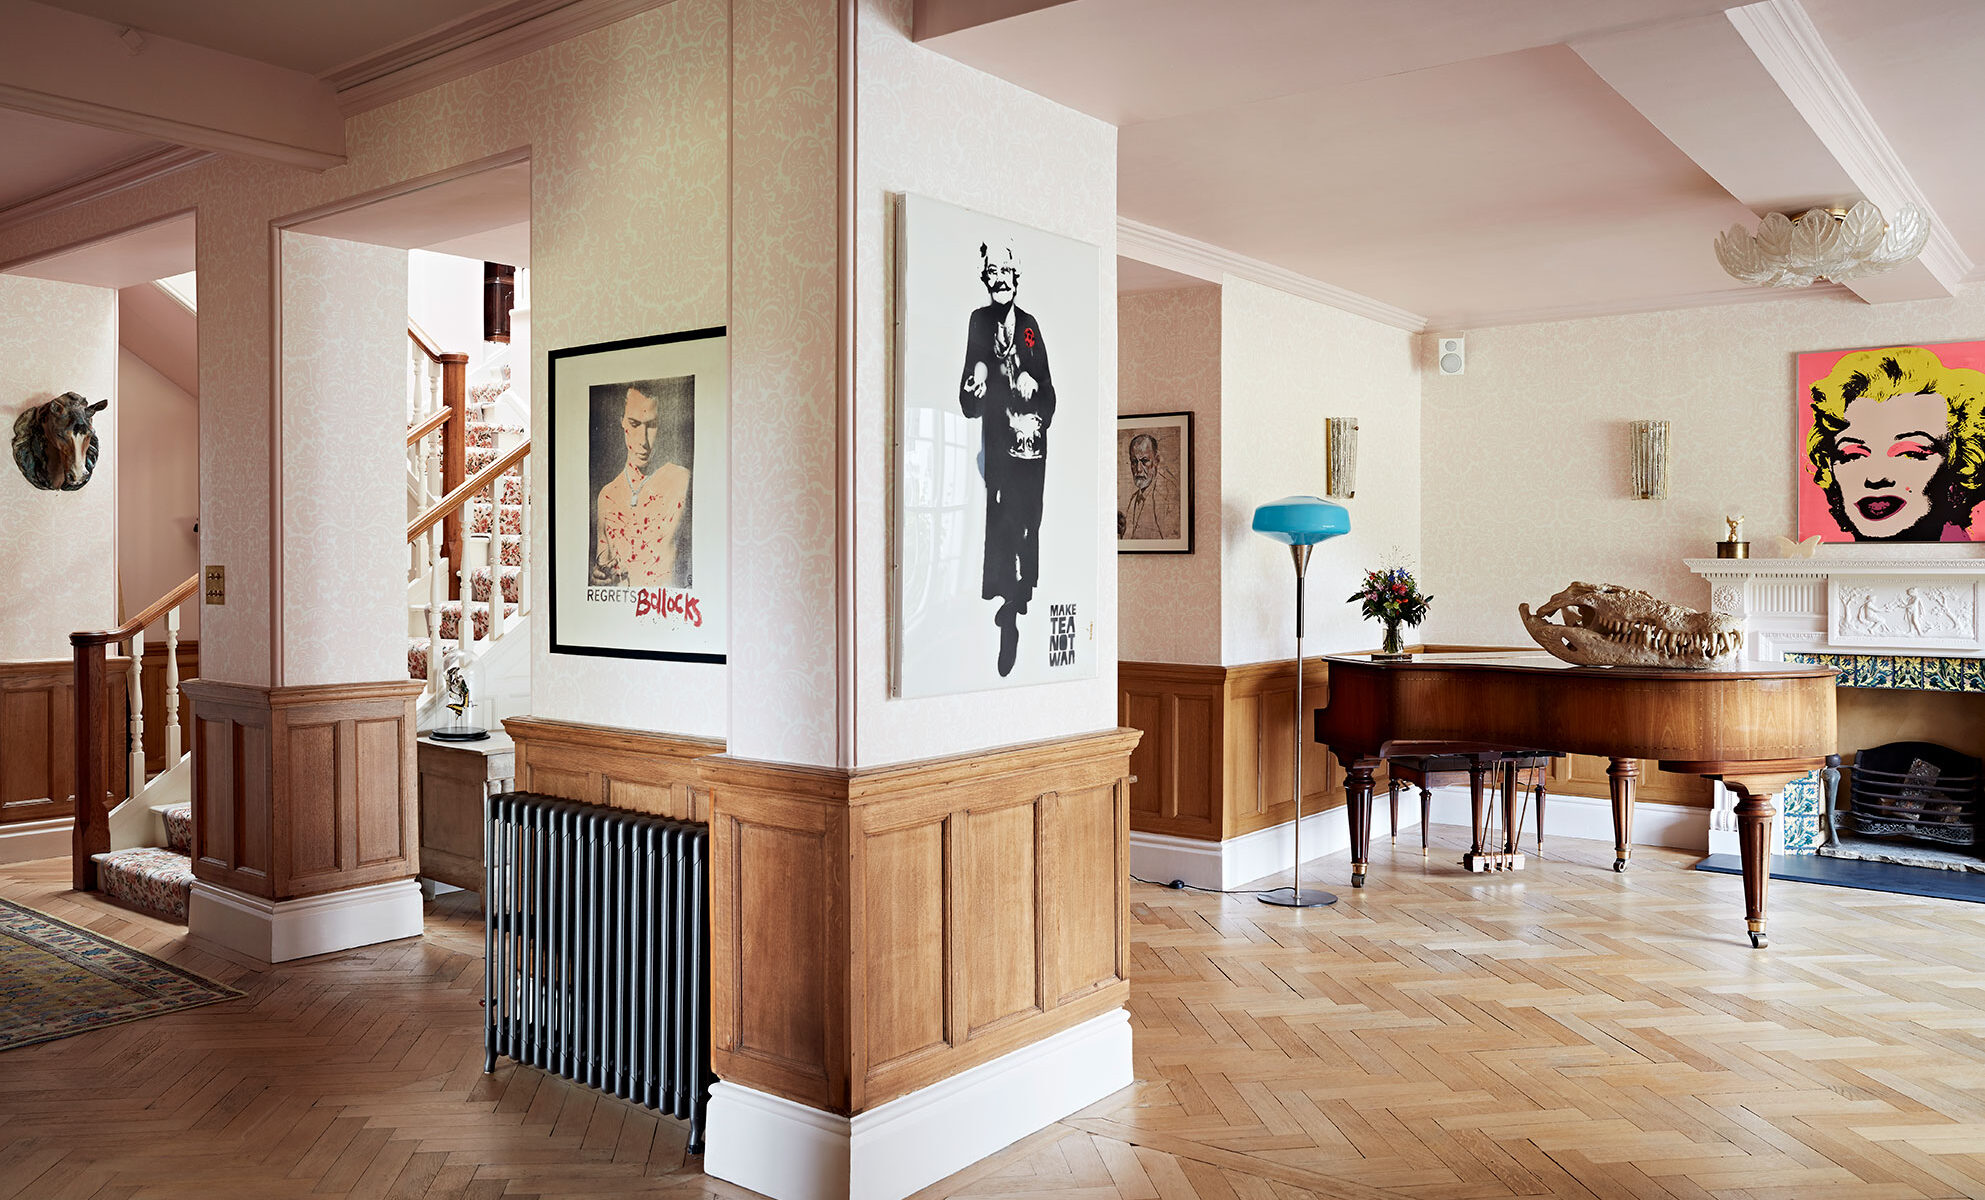 Open plan hallway with herringbone parquet, wood panel walls and a grand piano